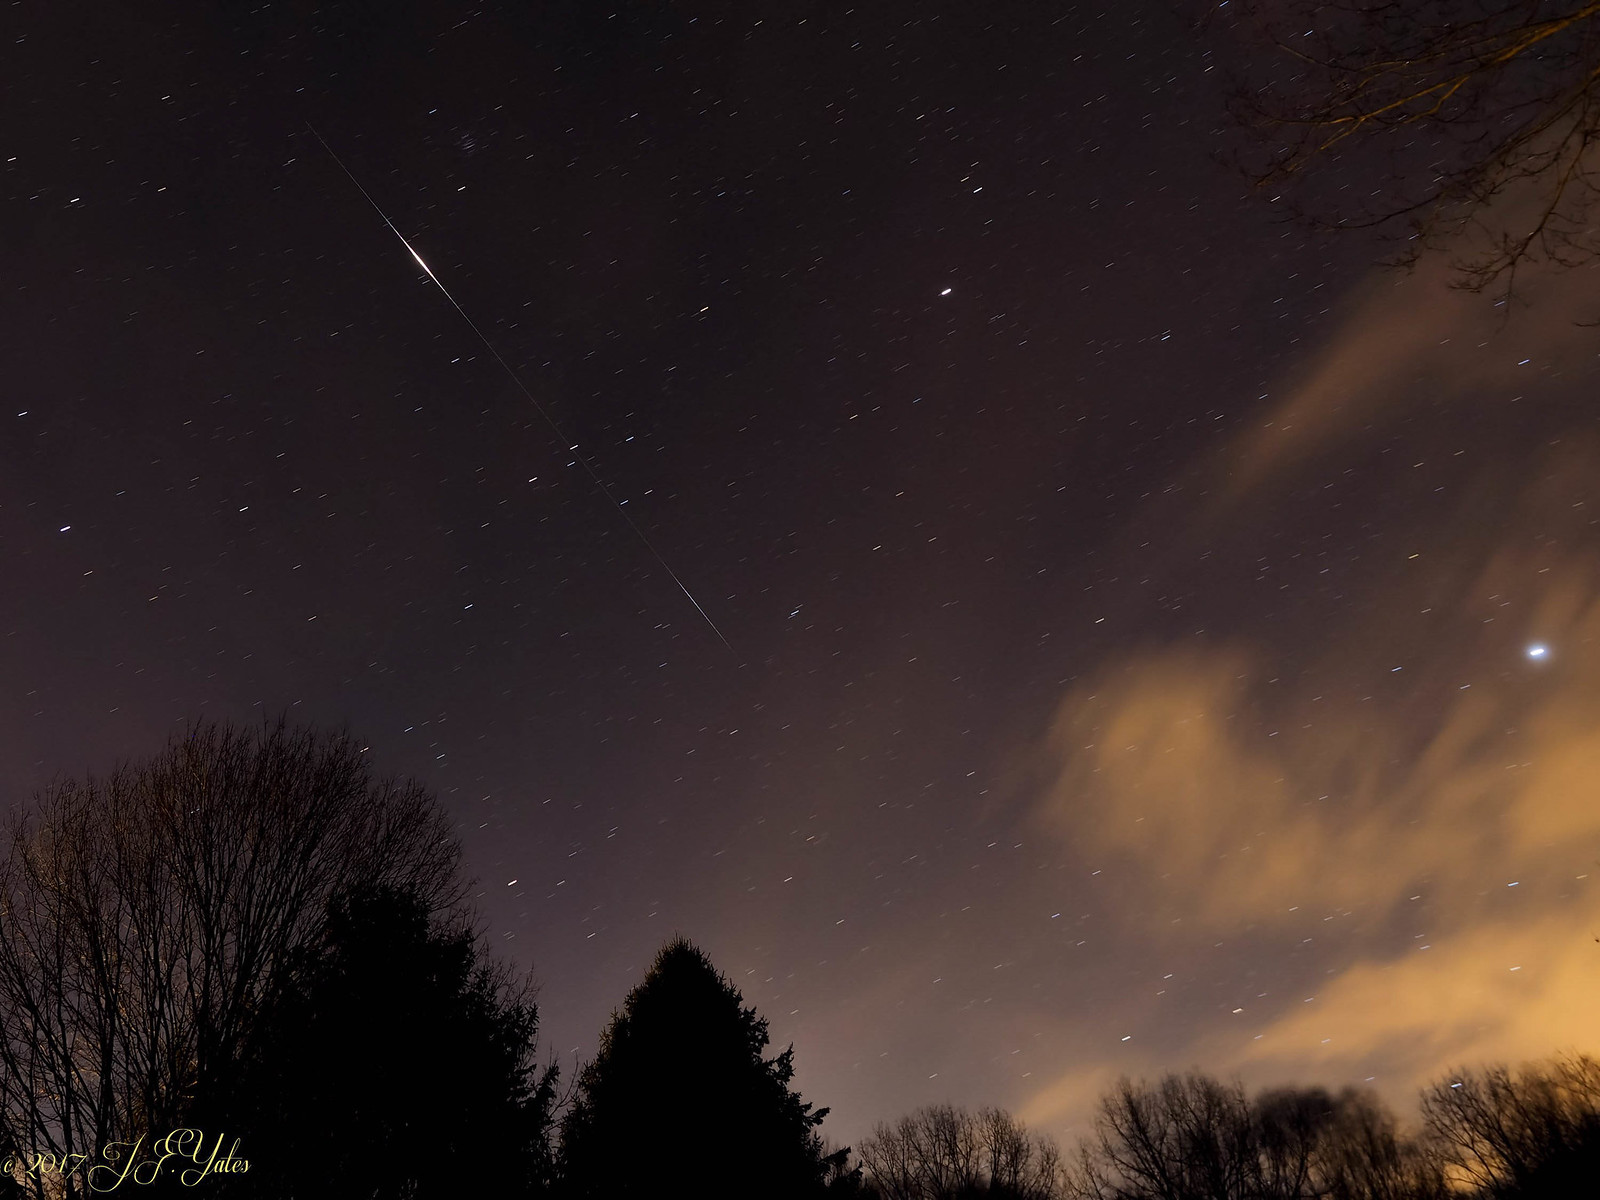 Iridium 46 double flare